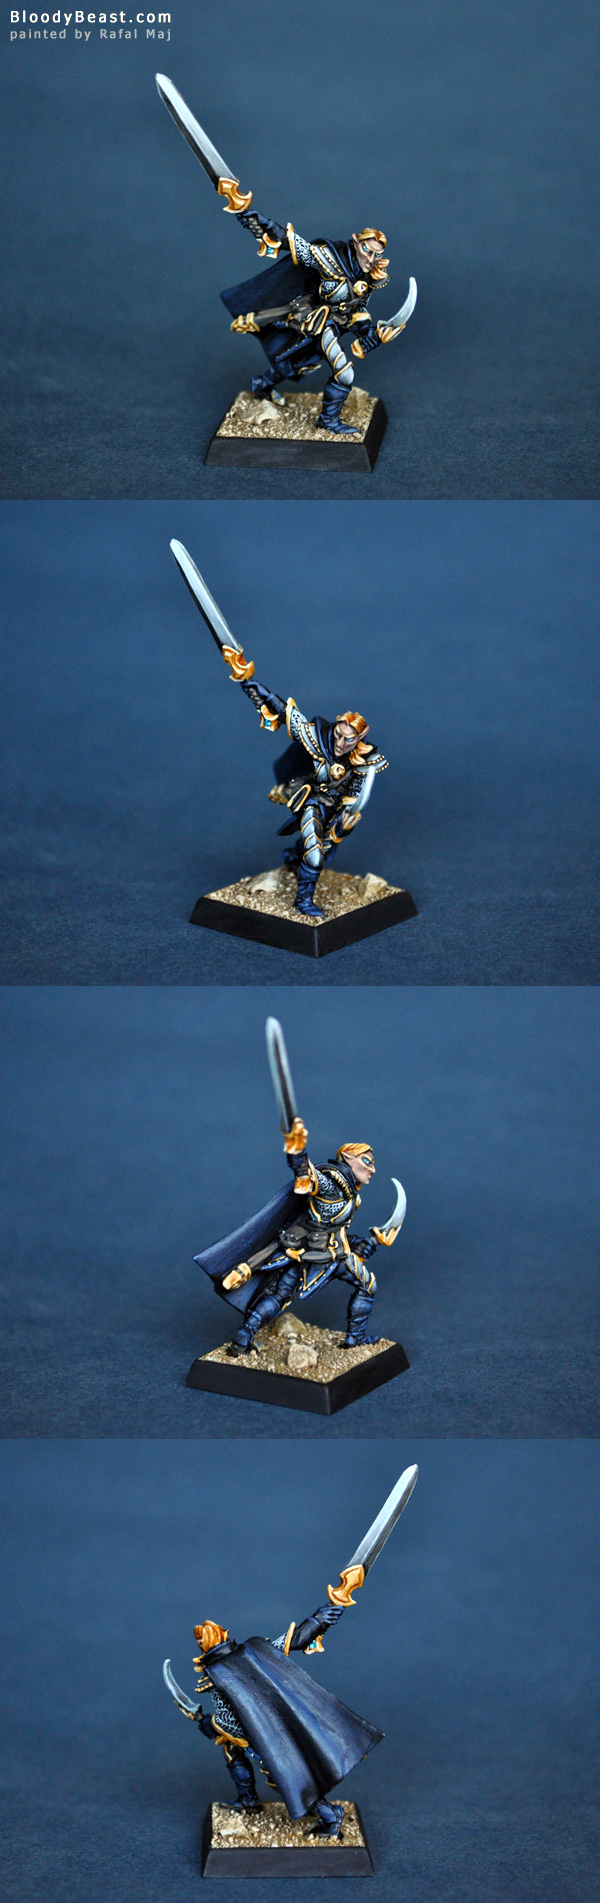 Reaper 14551 Vale Ranger Sergeant painted by Rafal Maj (BloodyBeast.com)